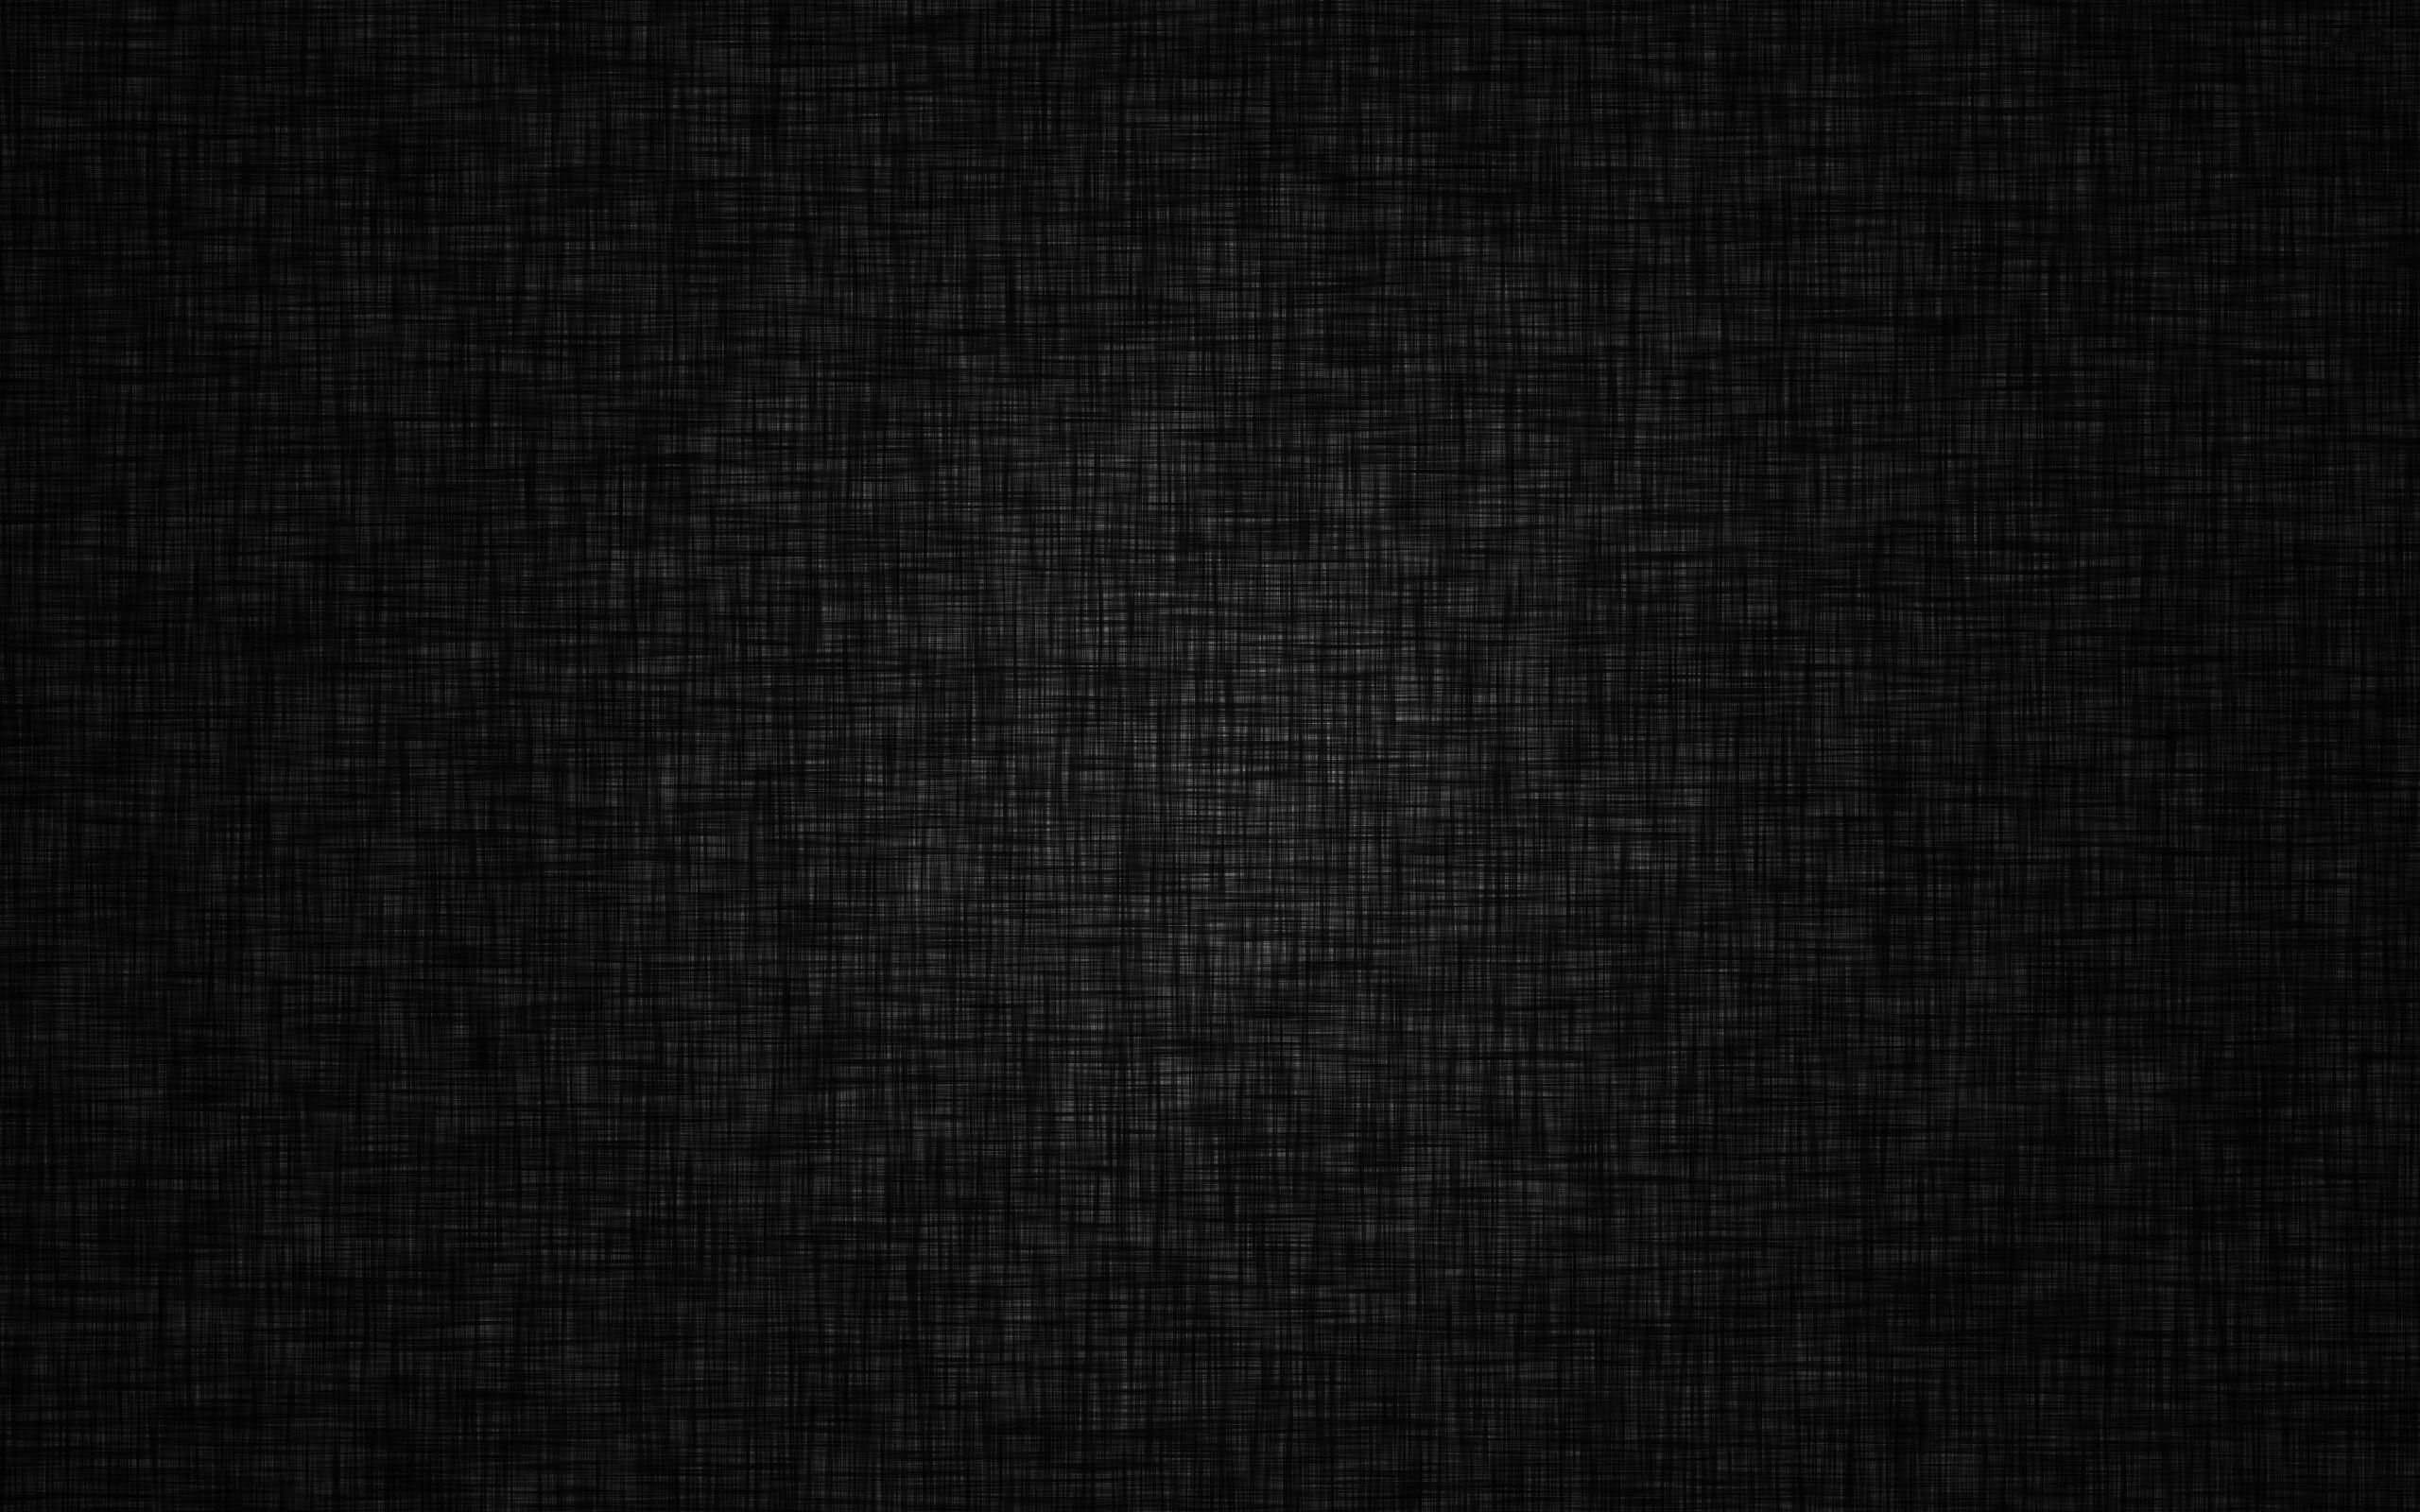 Black Texture Background Awesome Pinterest Black